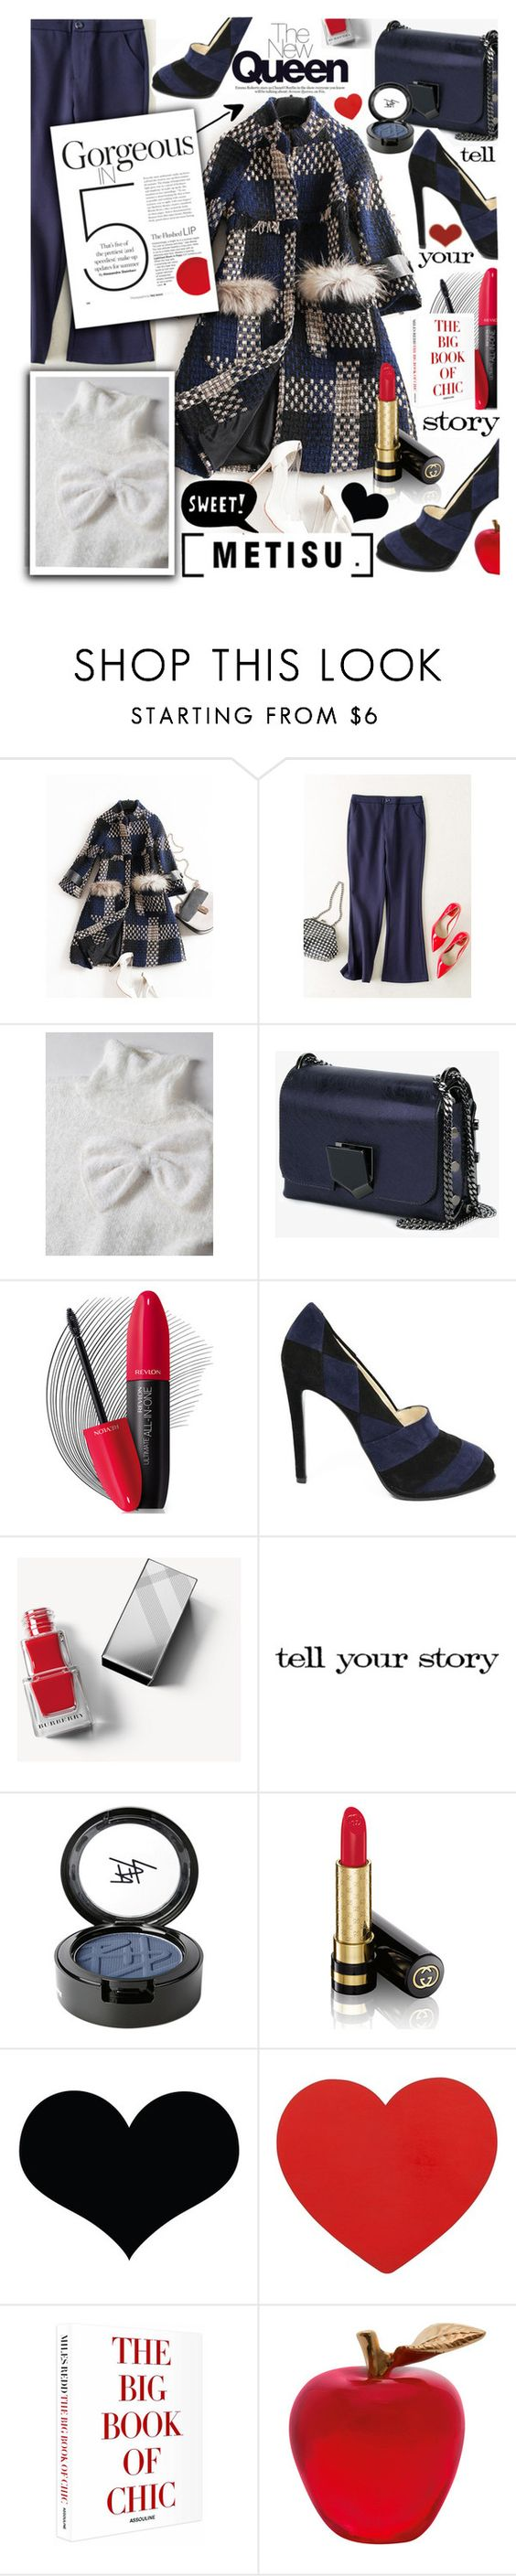 """""""METISU CONTEST - Count down to METISU BLACK FRIDAY!!"""" by anin-kutak ❤ liked on Polyvore featuring Jimmy Choo, Revlon, Giorgio Armani, ESPRIT, Burberry, Tim Holtz, Beauty Is Life, Gucci, Hysteric Co. and Daum"""